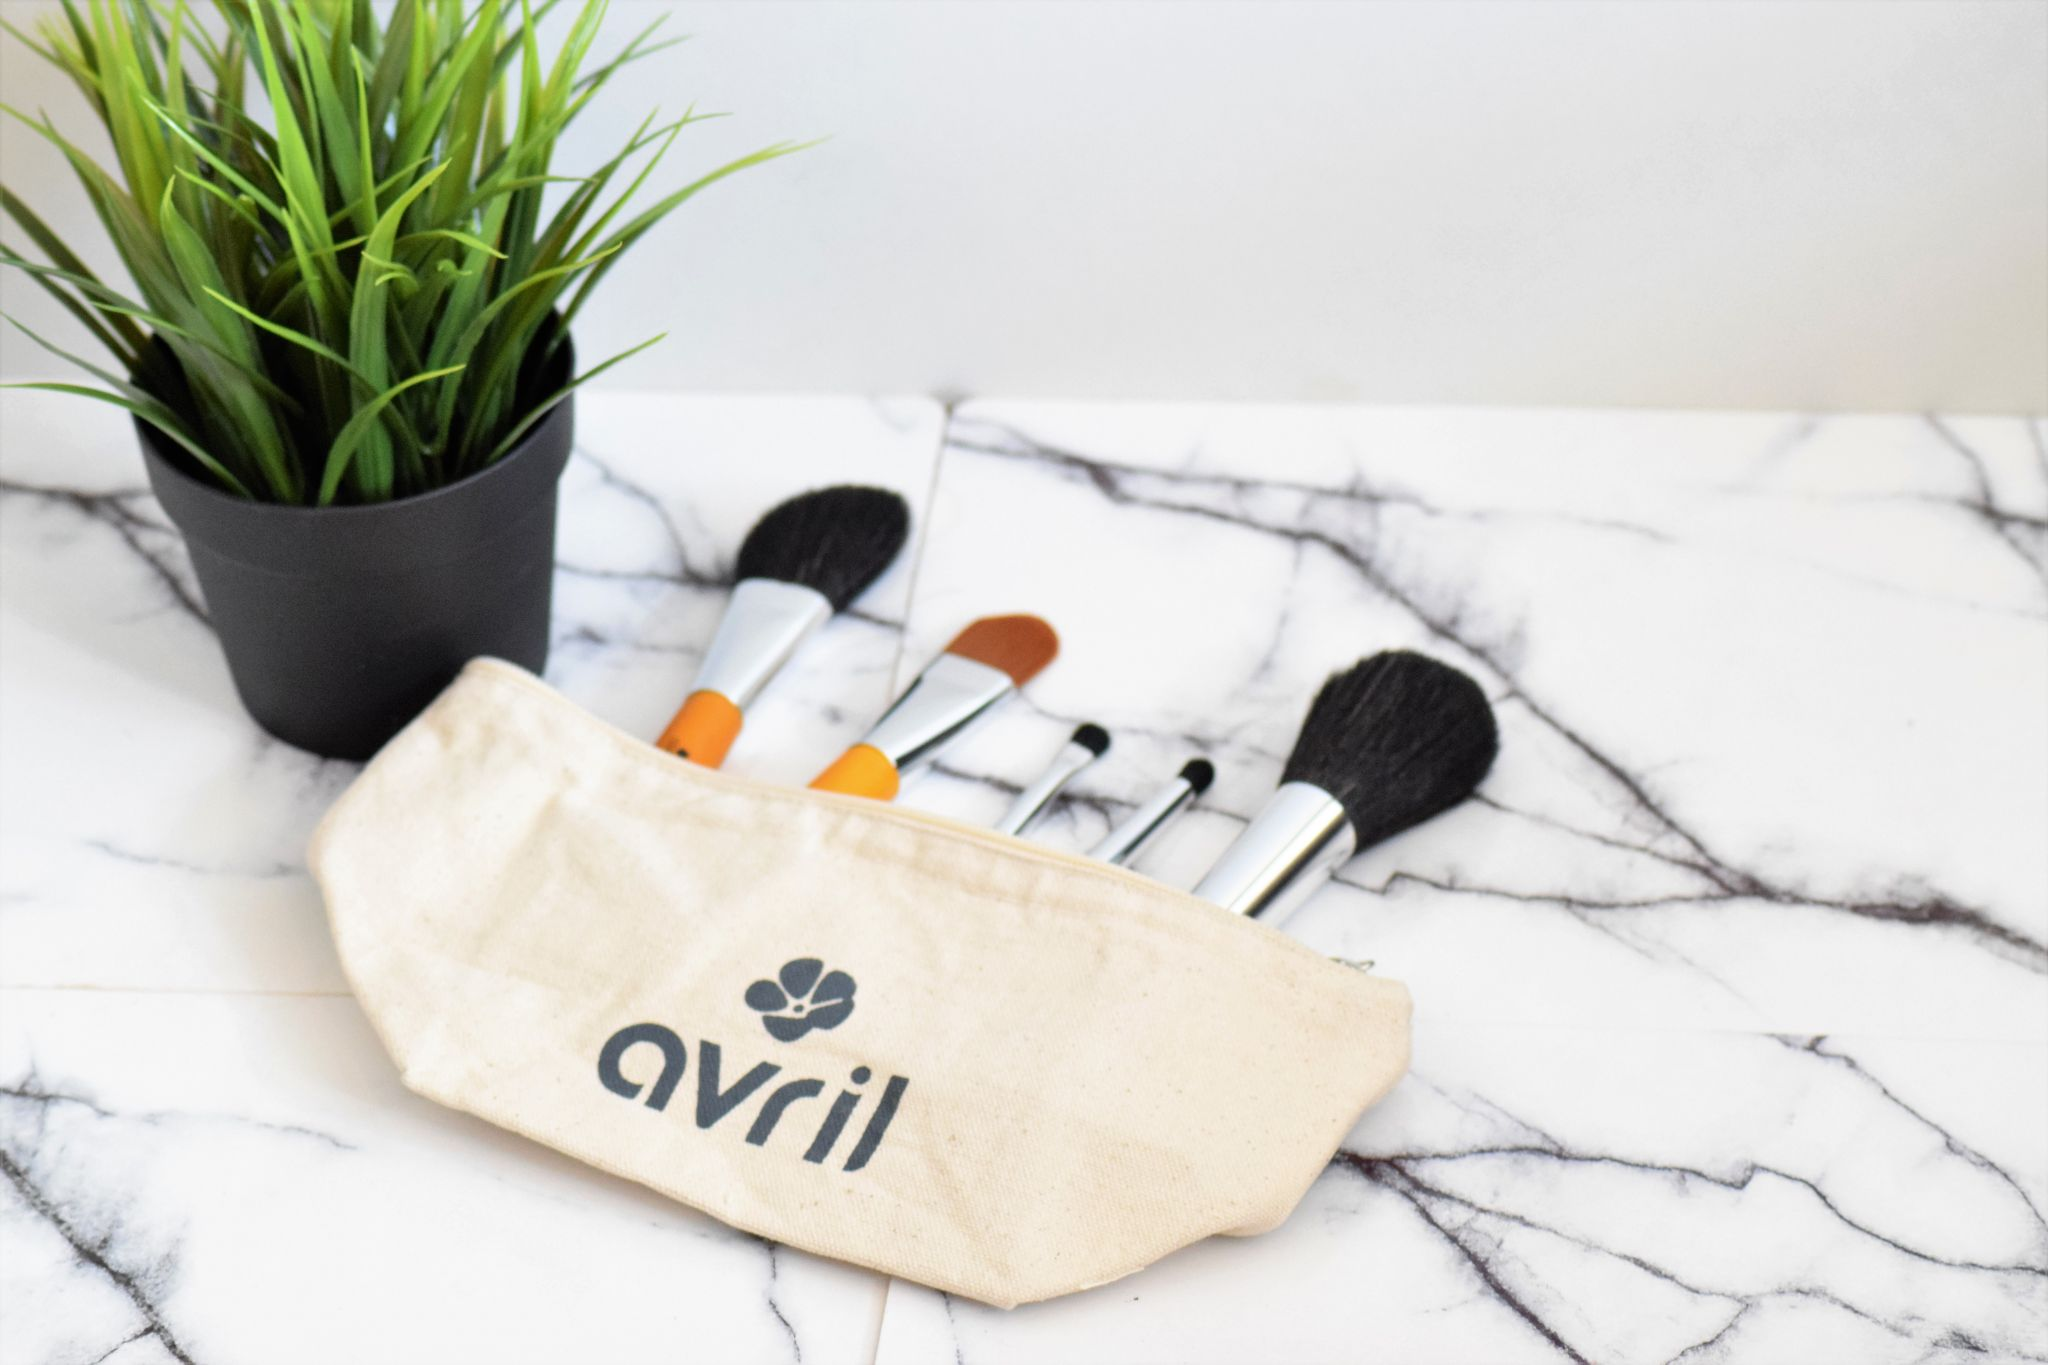 DSC 3207 1440x960 - The Organic Brand You've Been Waiting For: Avril Cosmetics